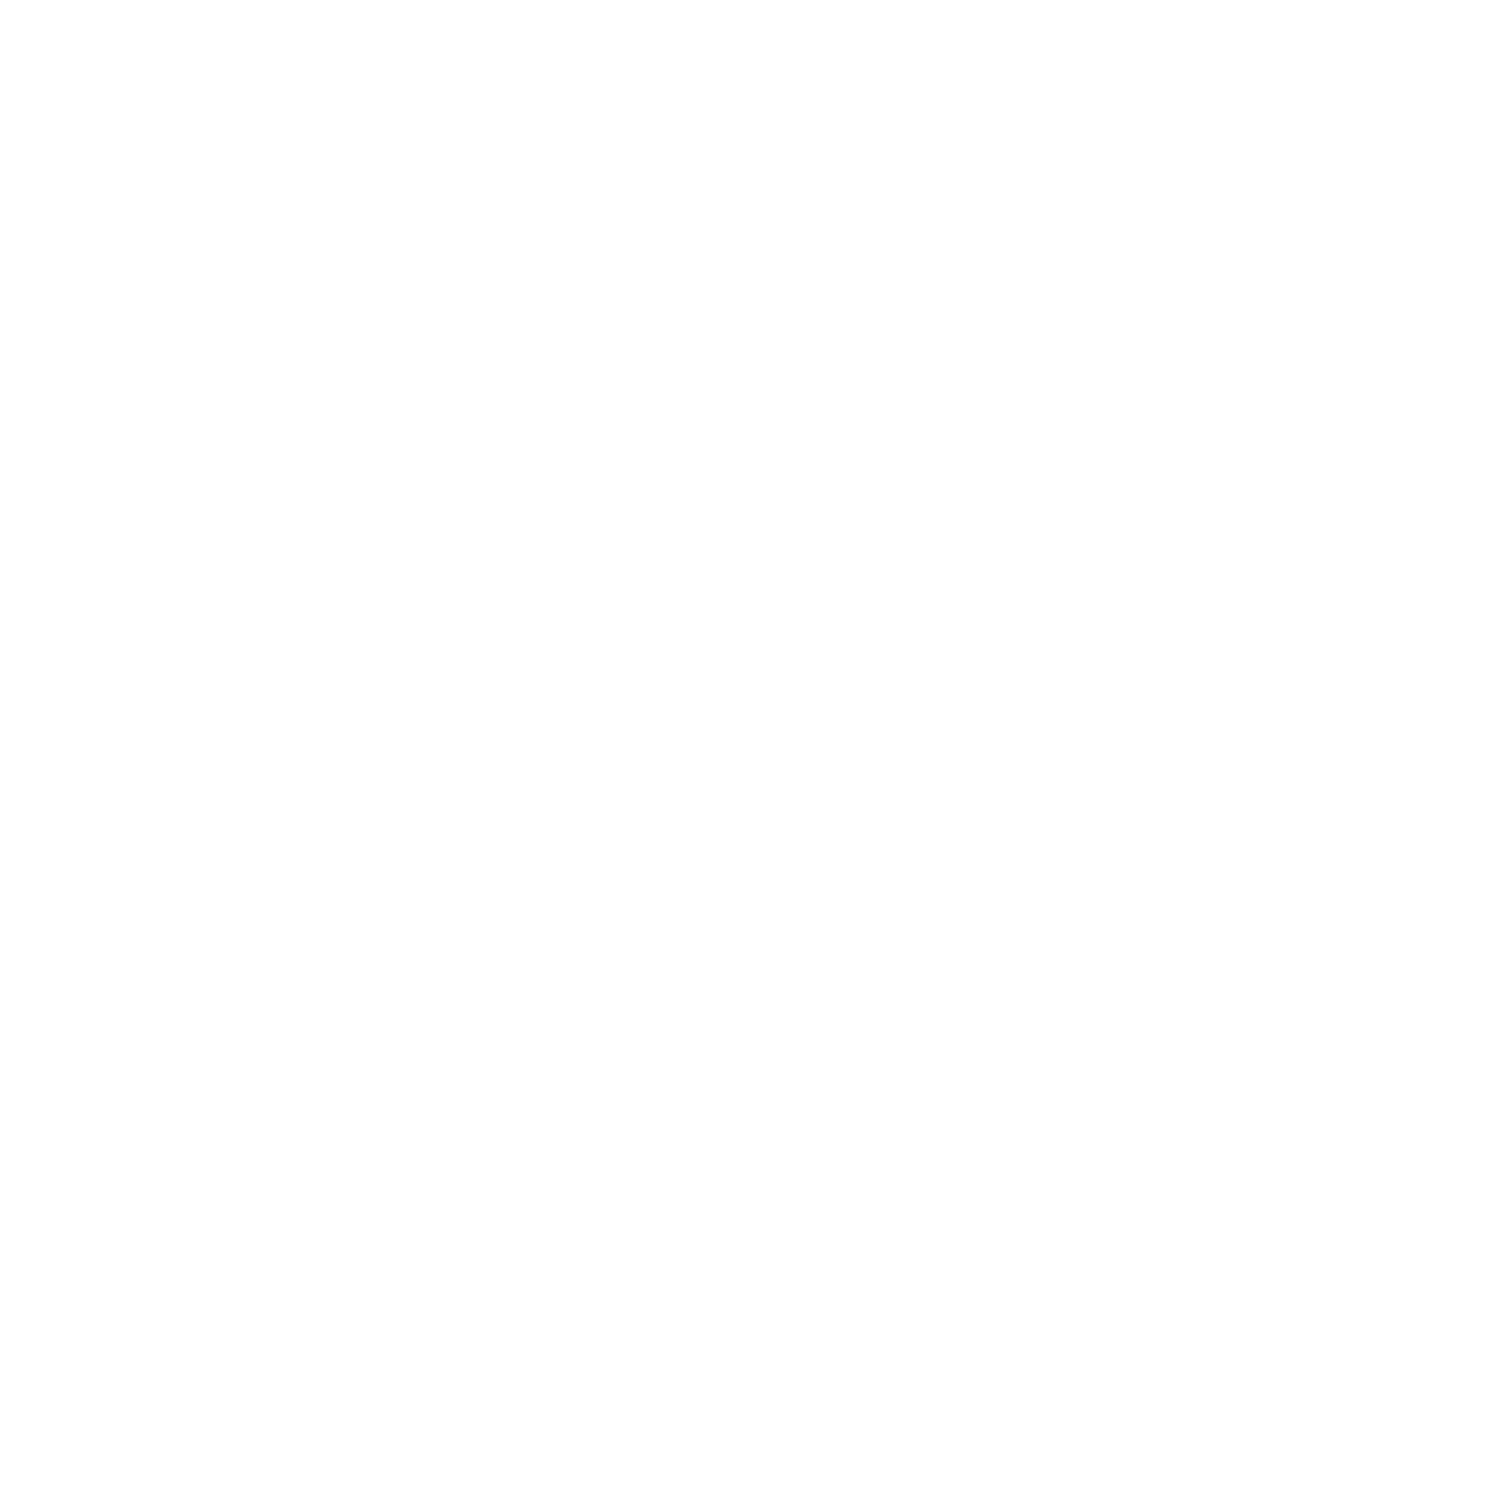 Whirlwind Performance Horses